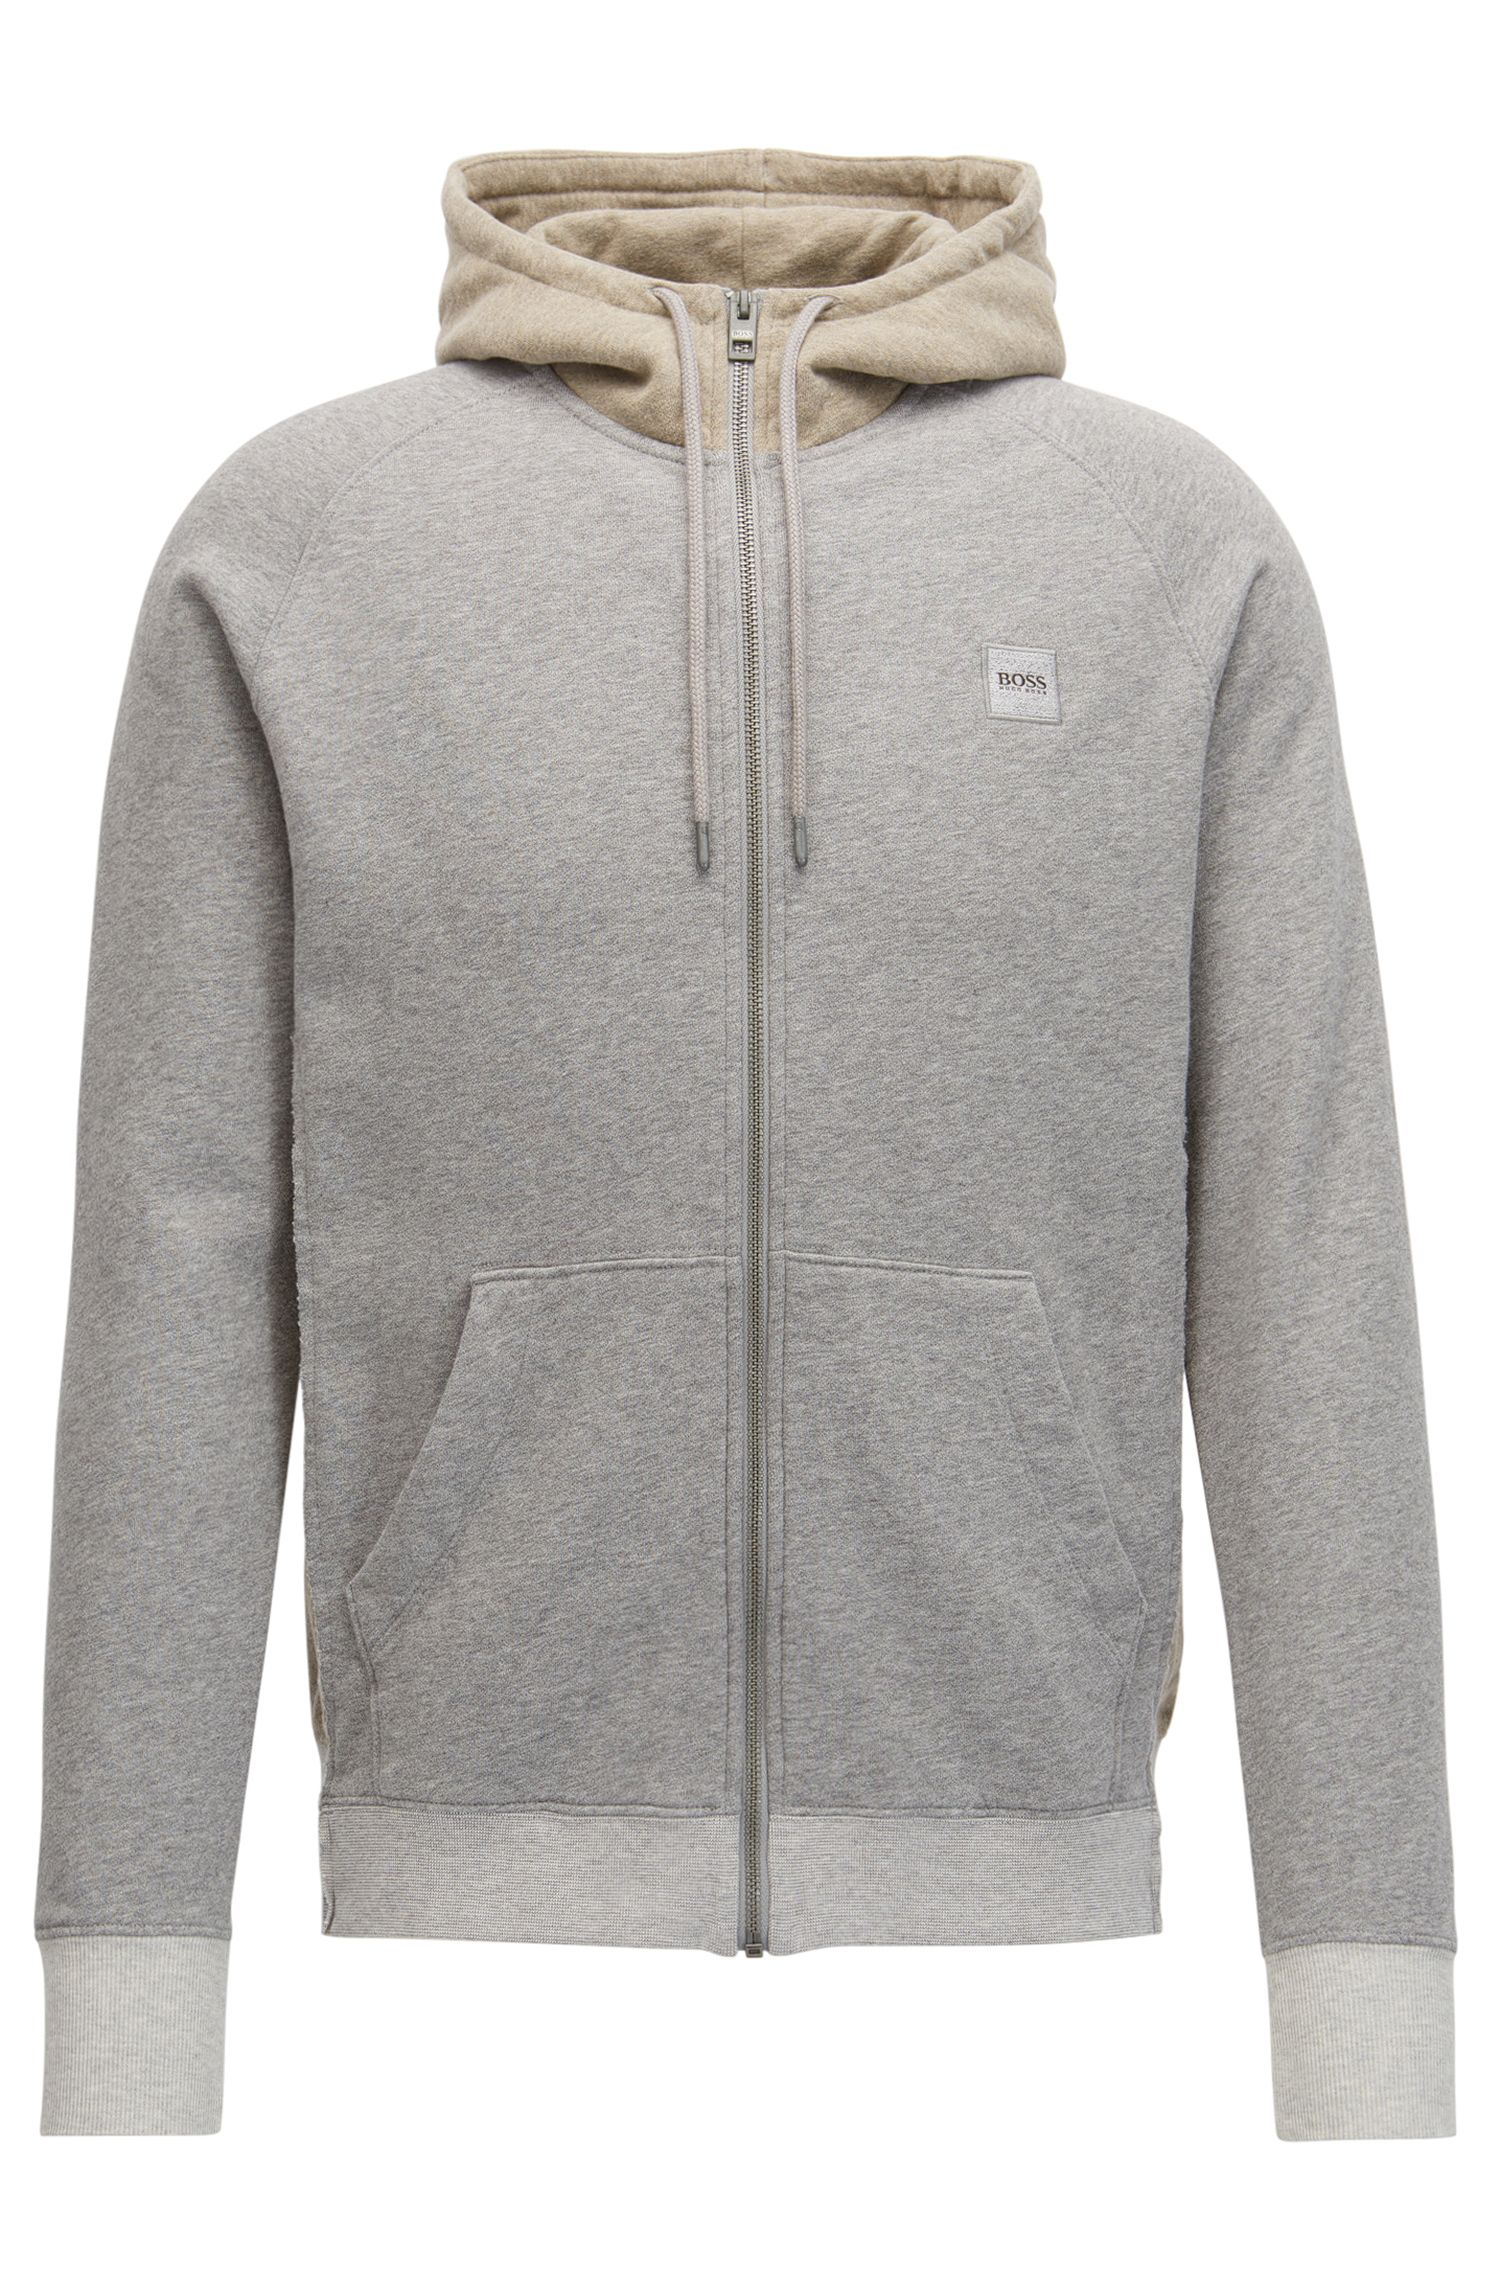 French Terry Full-Zip Hoodie | Zteen